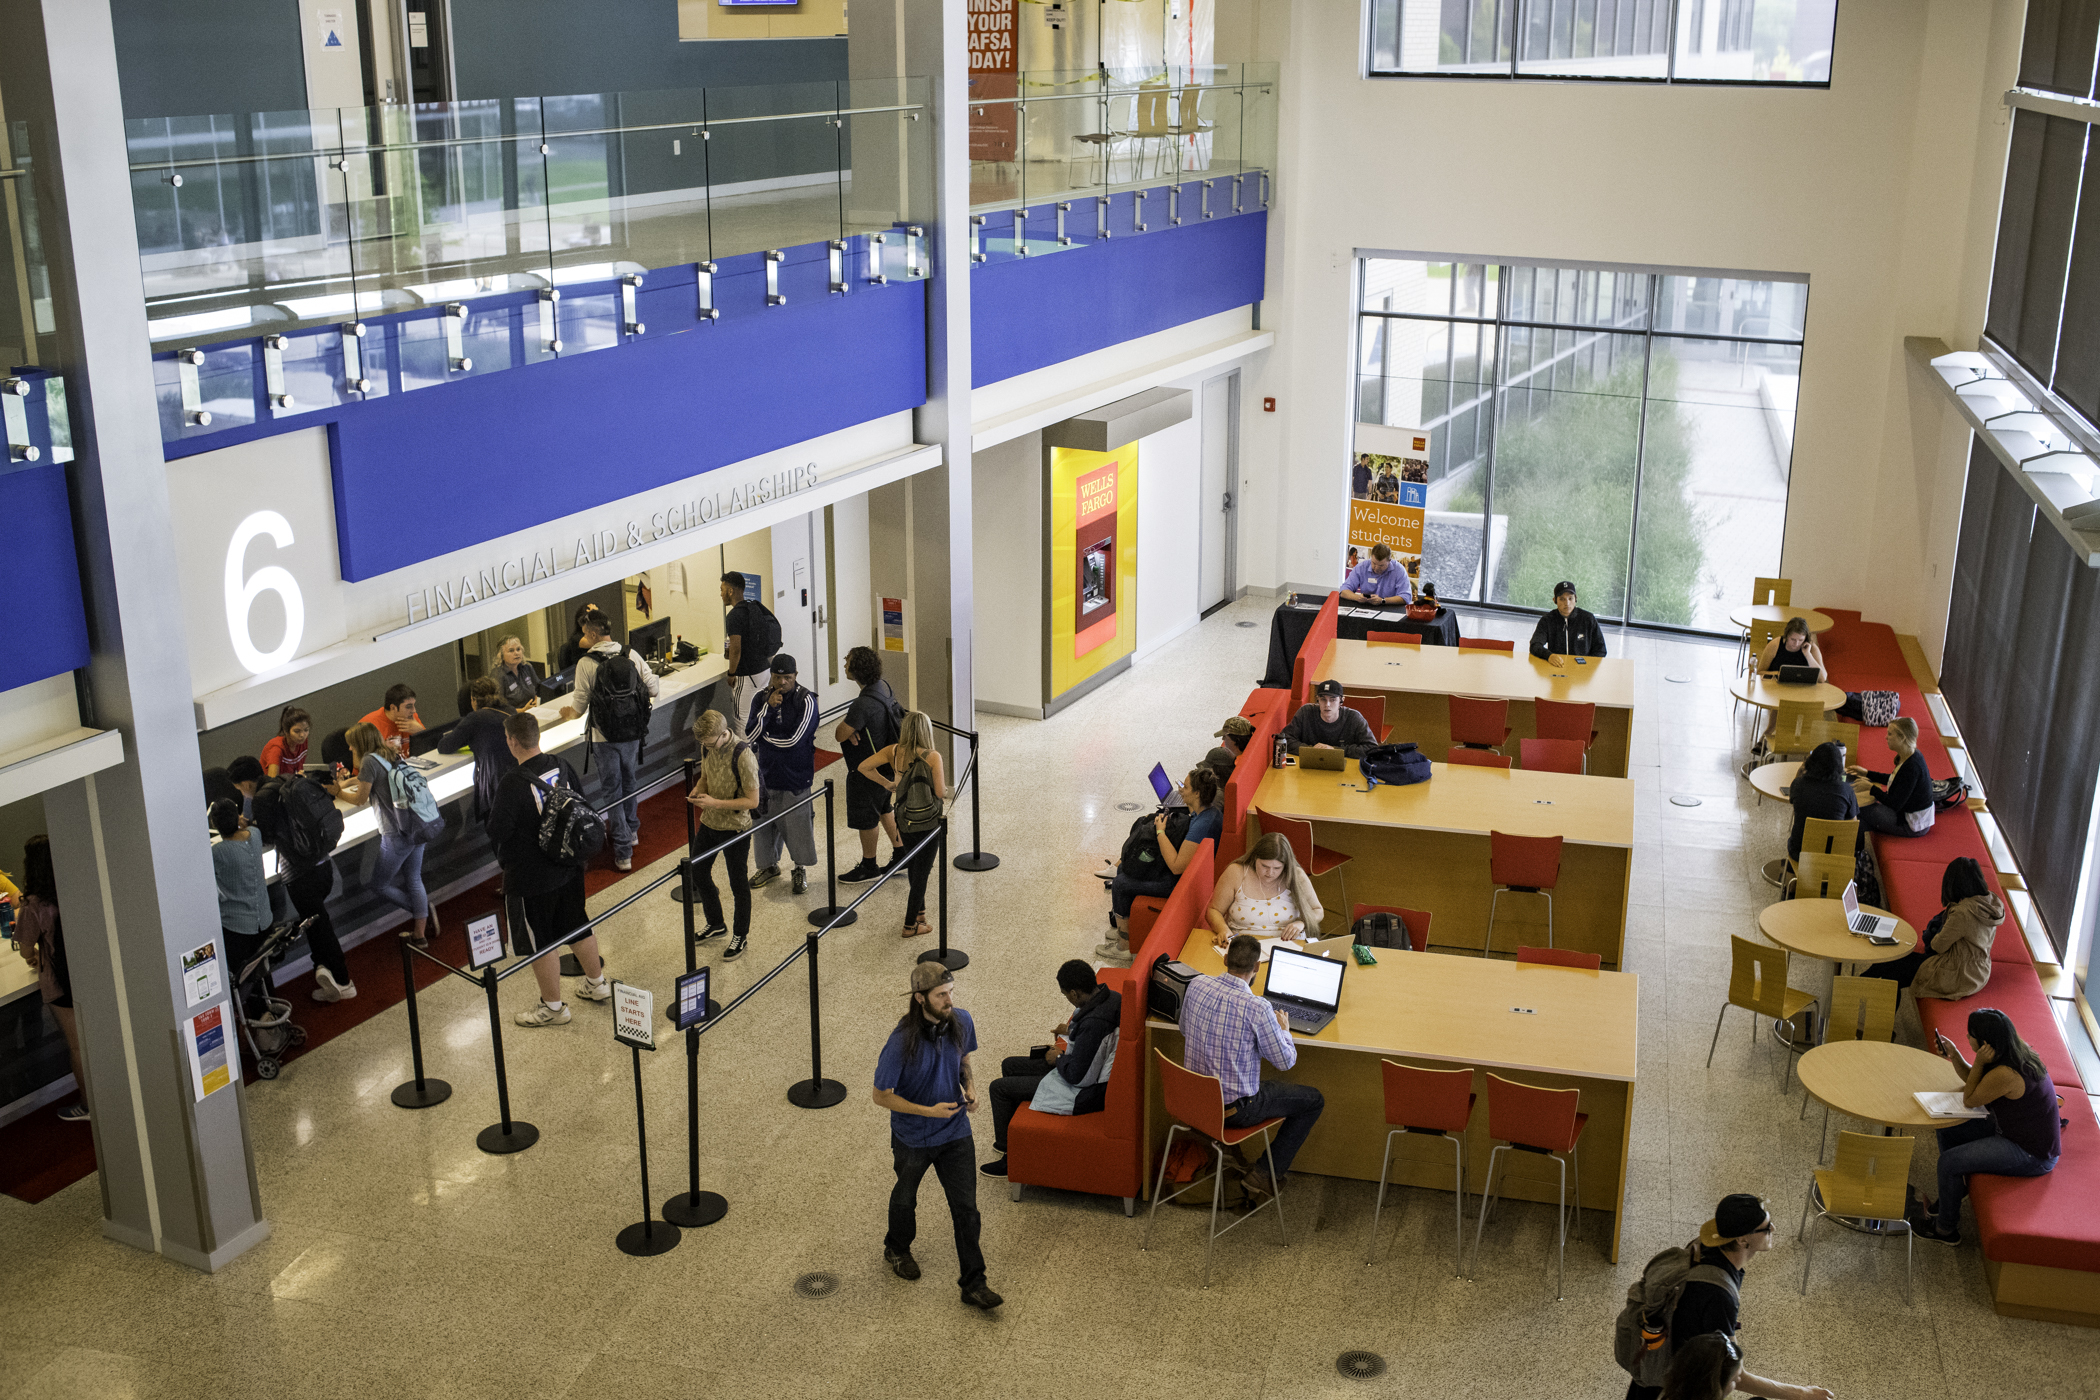 Photo from 2nd floor overlooking Financial Aid counter